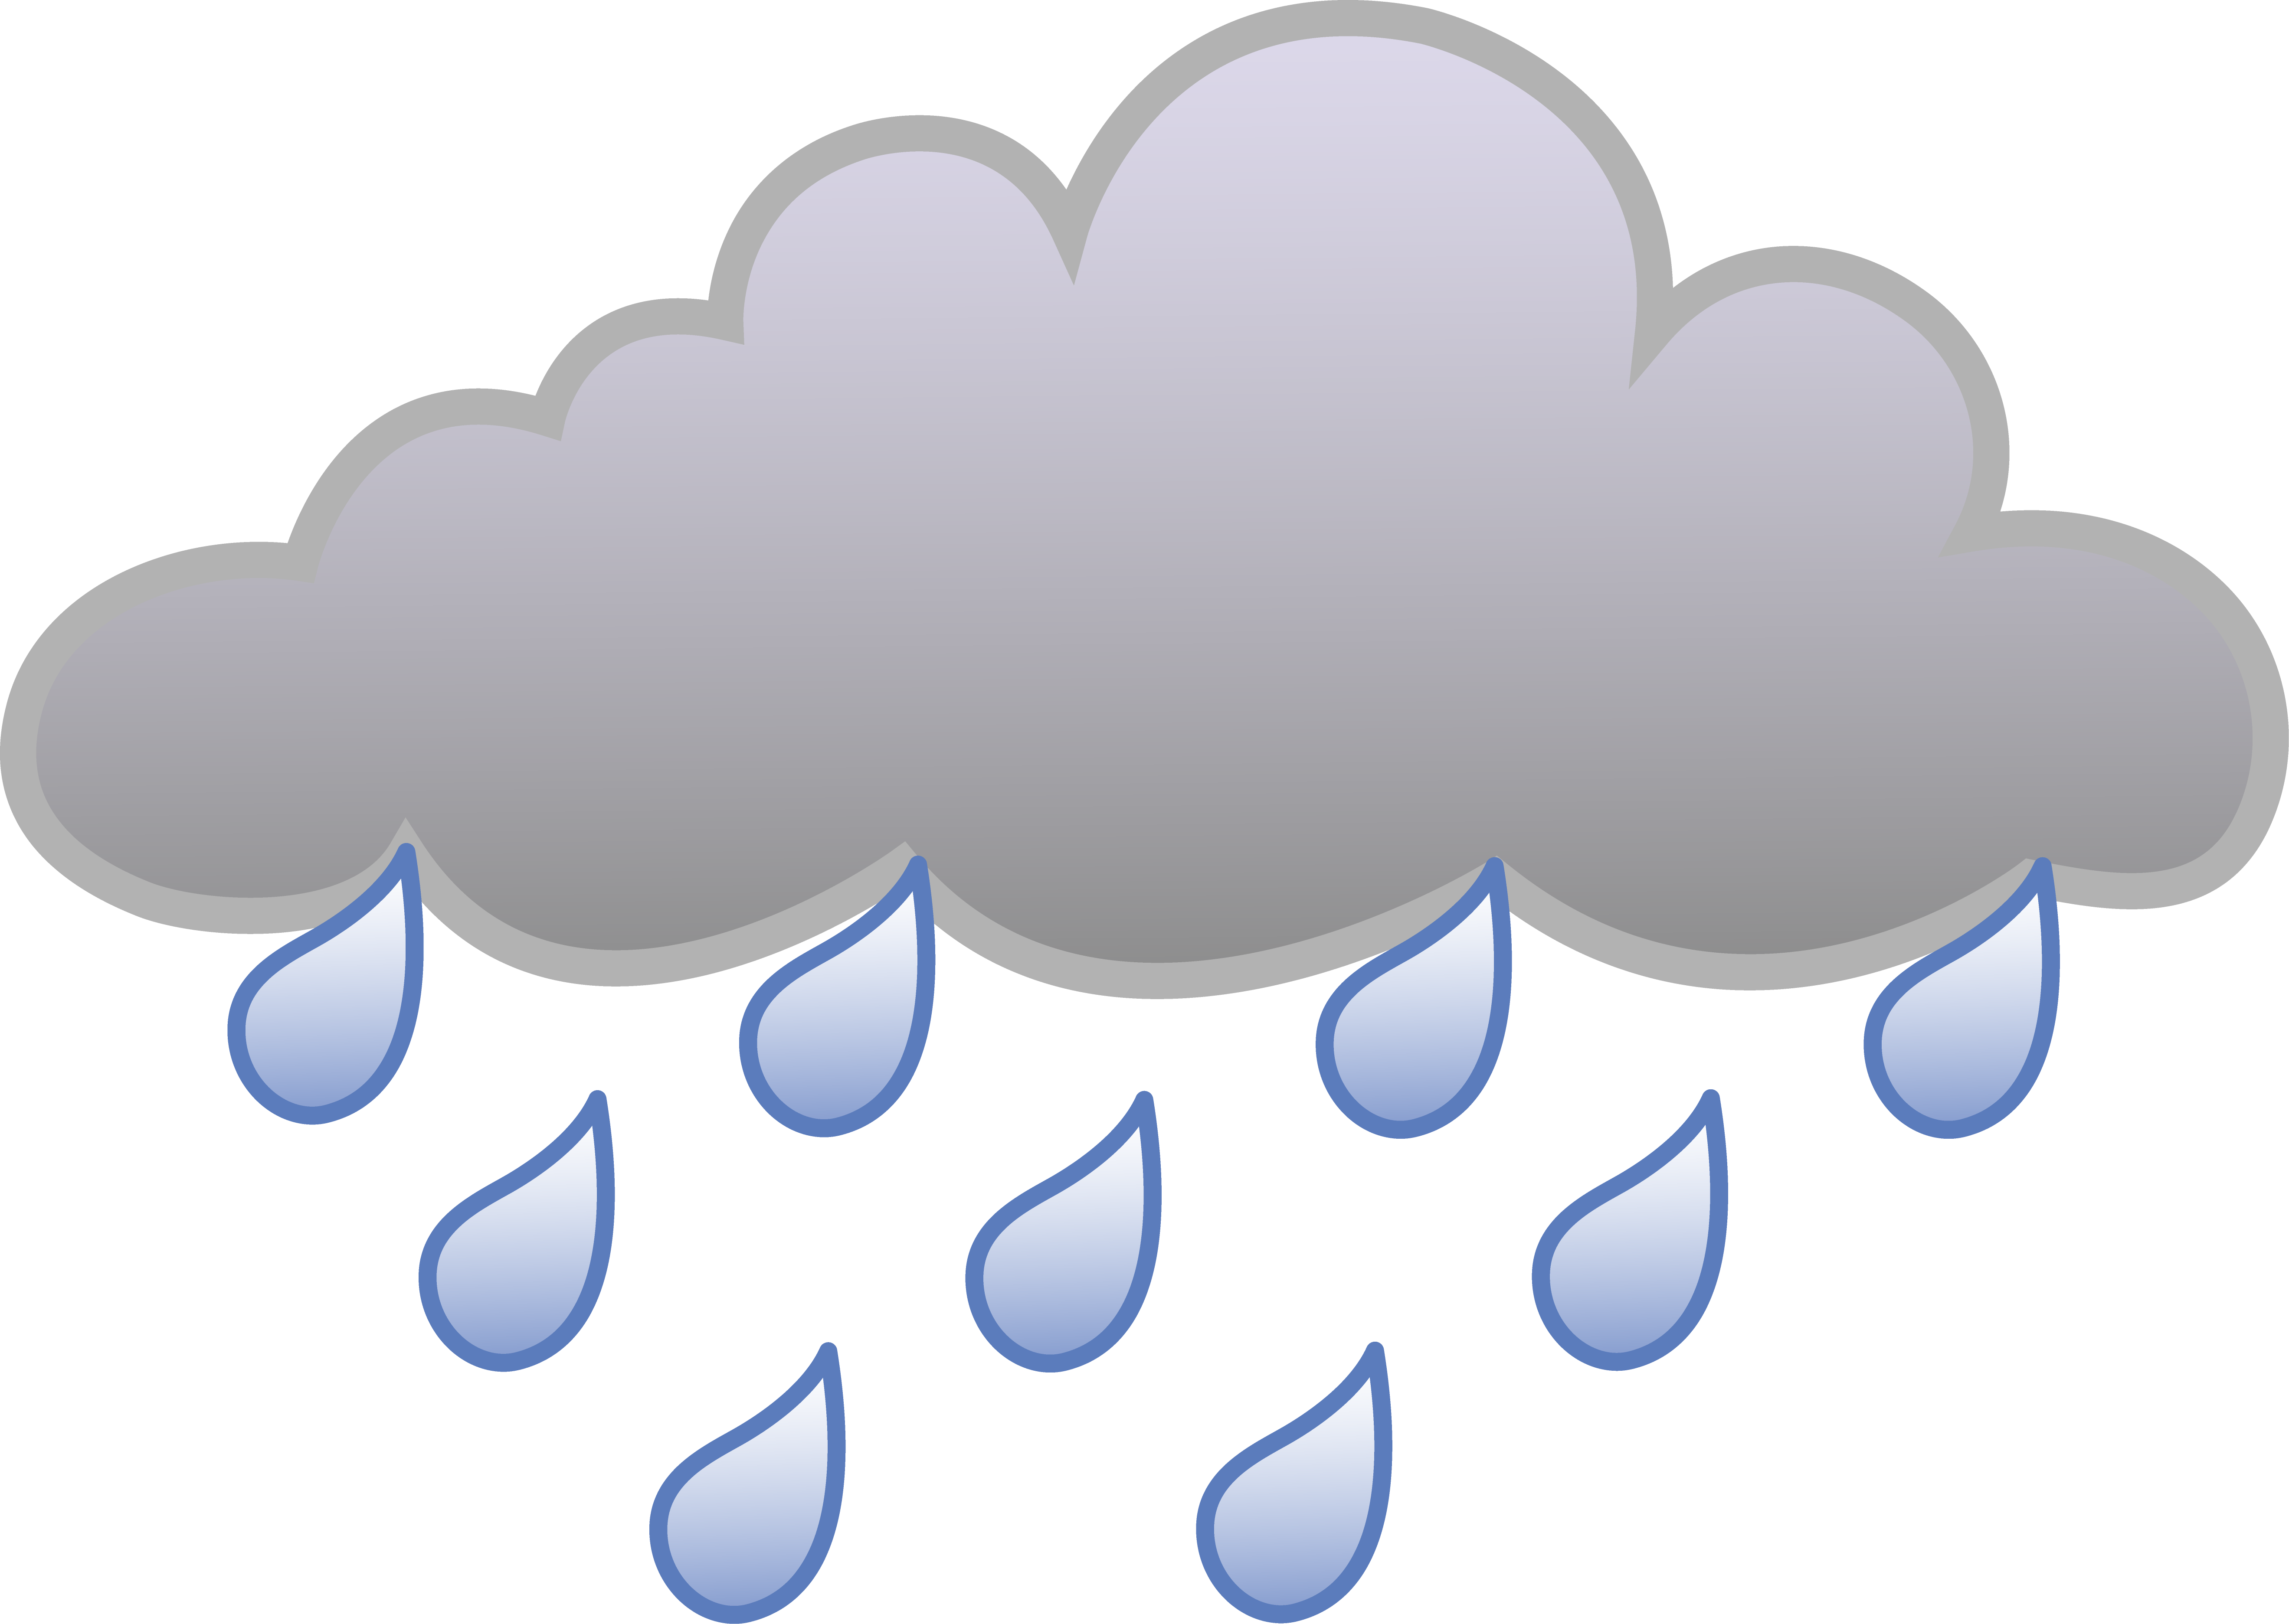 Rainfall clipart #6, Download drawings